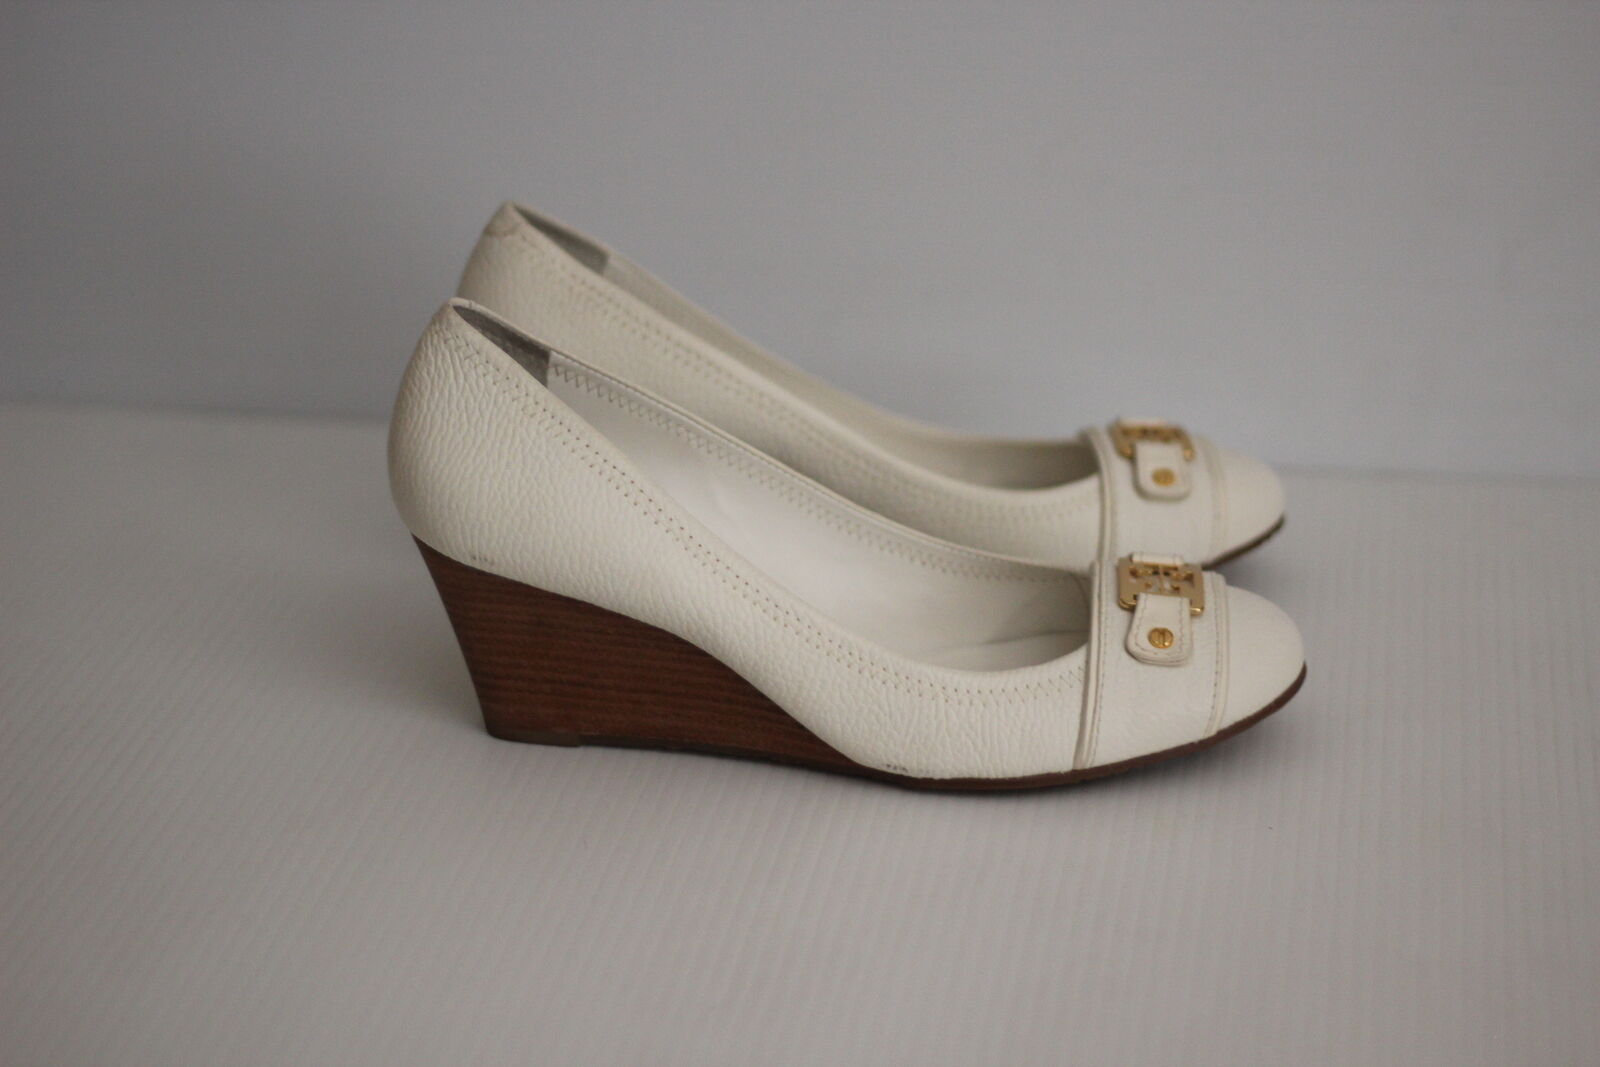 Tory Burch'Natalya 'Mid Wedge - Bleach bianca Leather  - Dimensione 11 M (V22)  negozio outlet